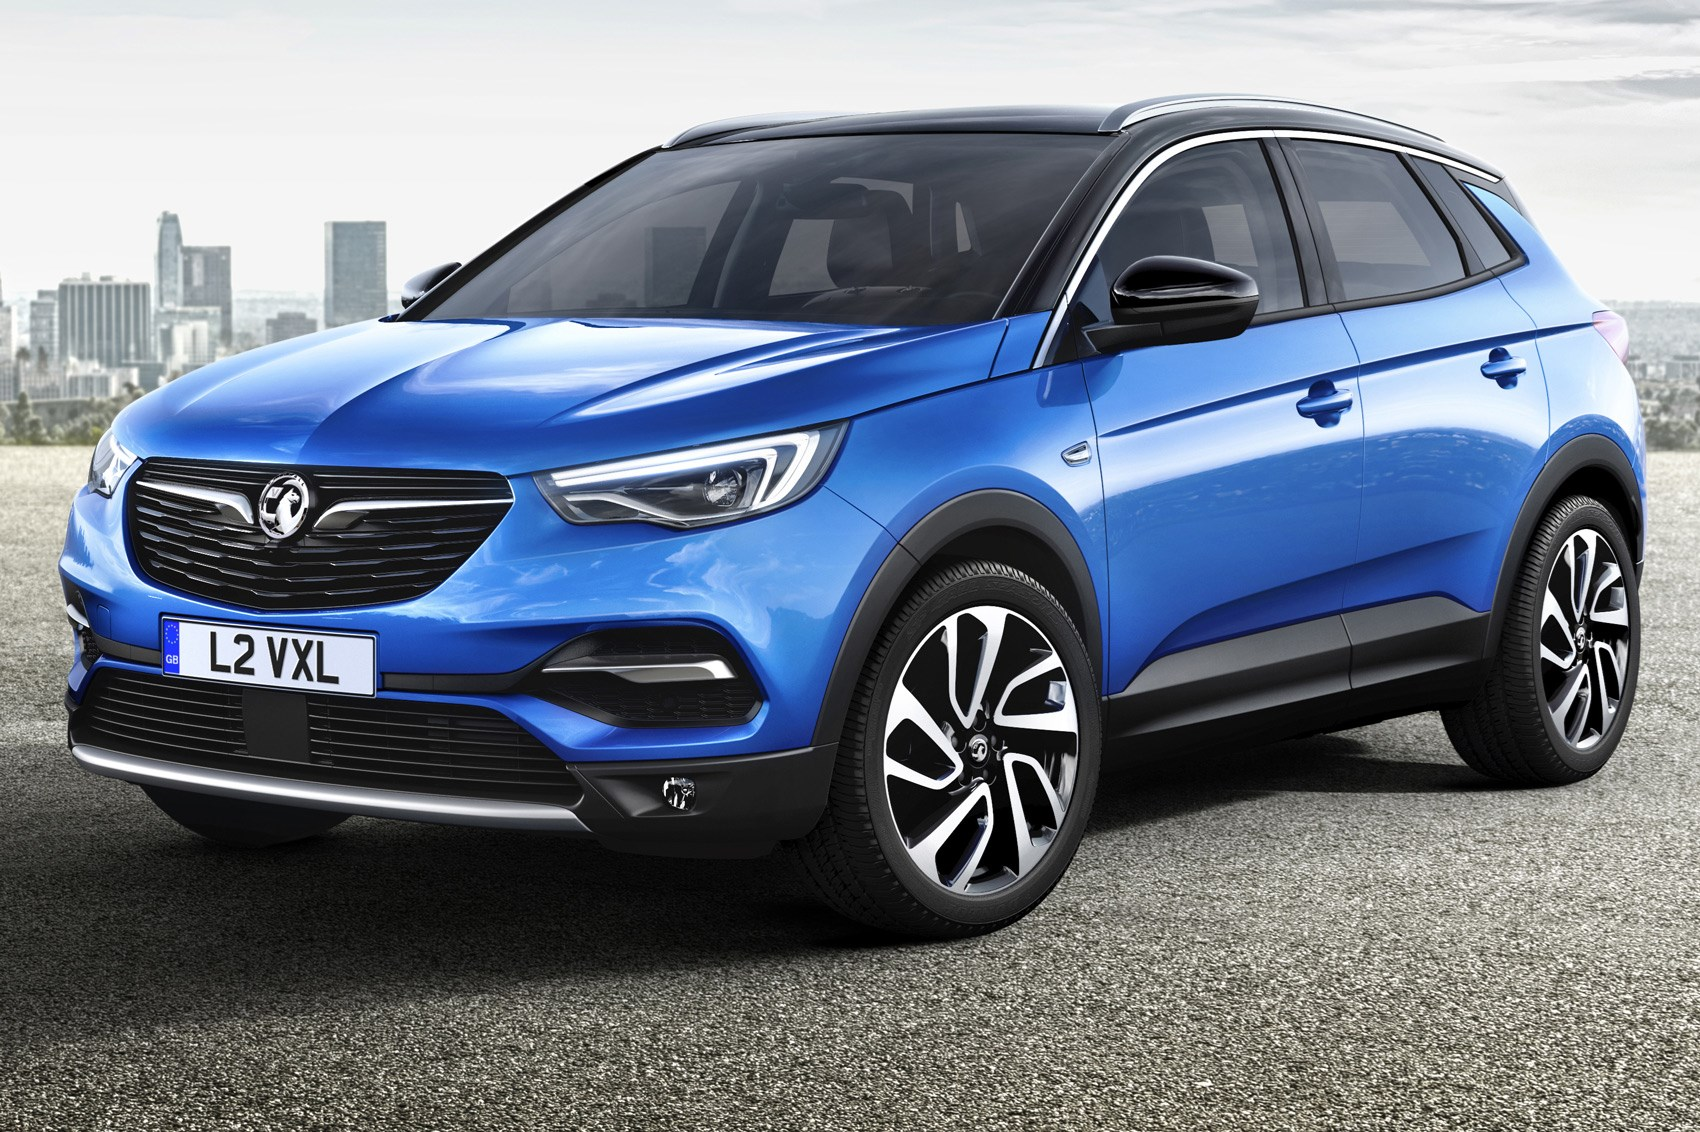 Vauxhall Grandland X revealed as GM's new mid-size SUV